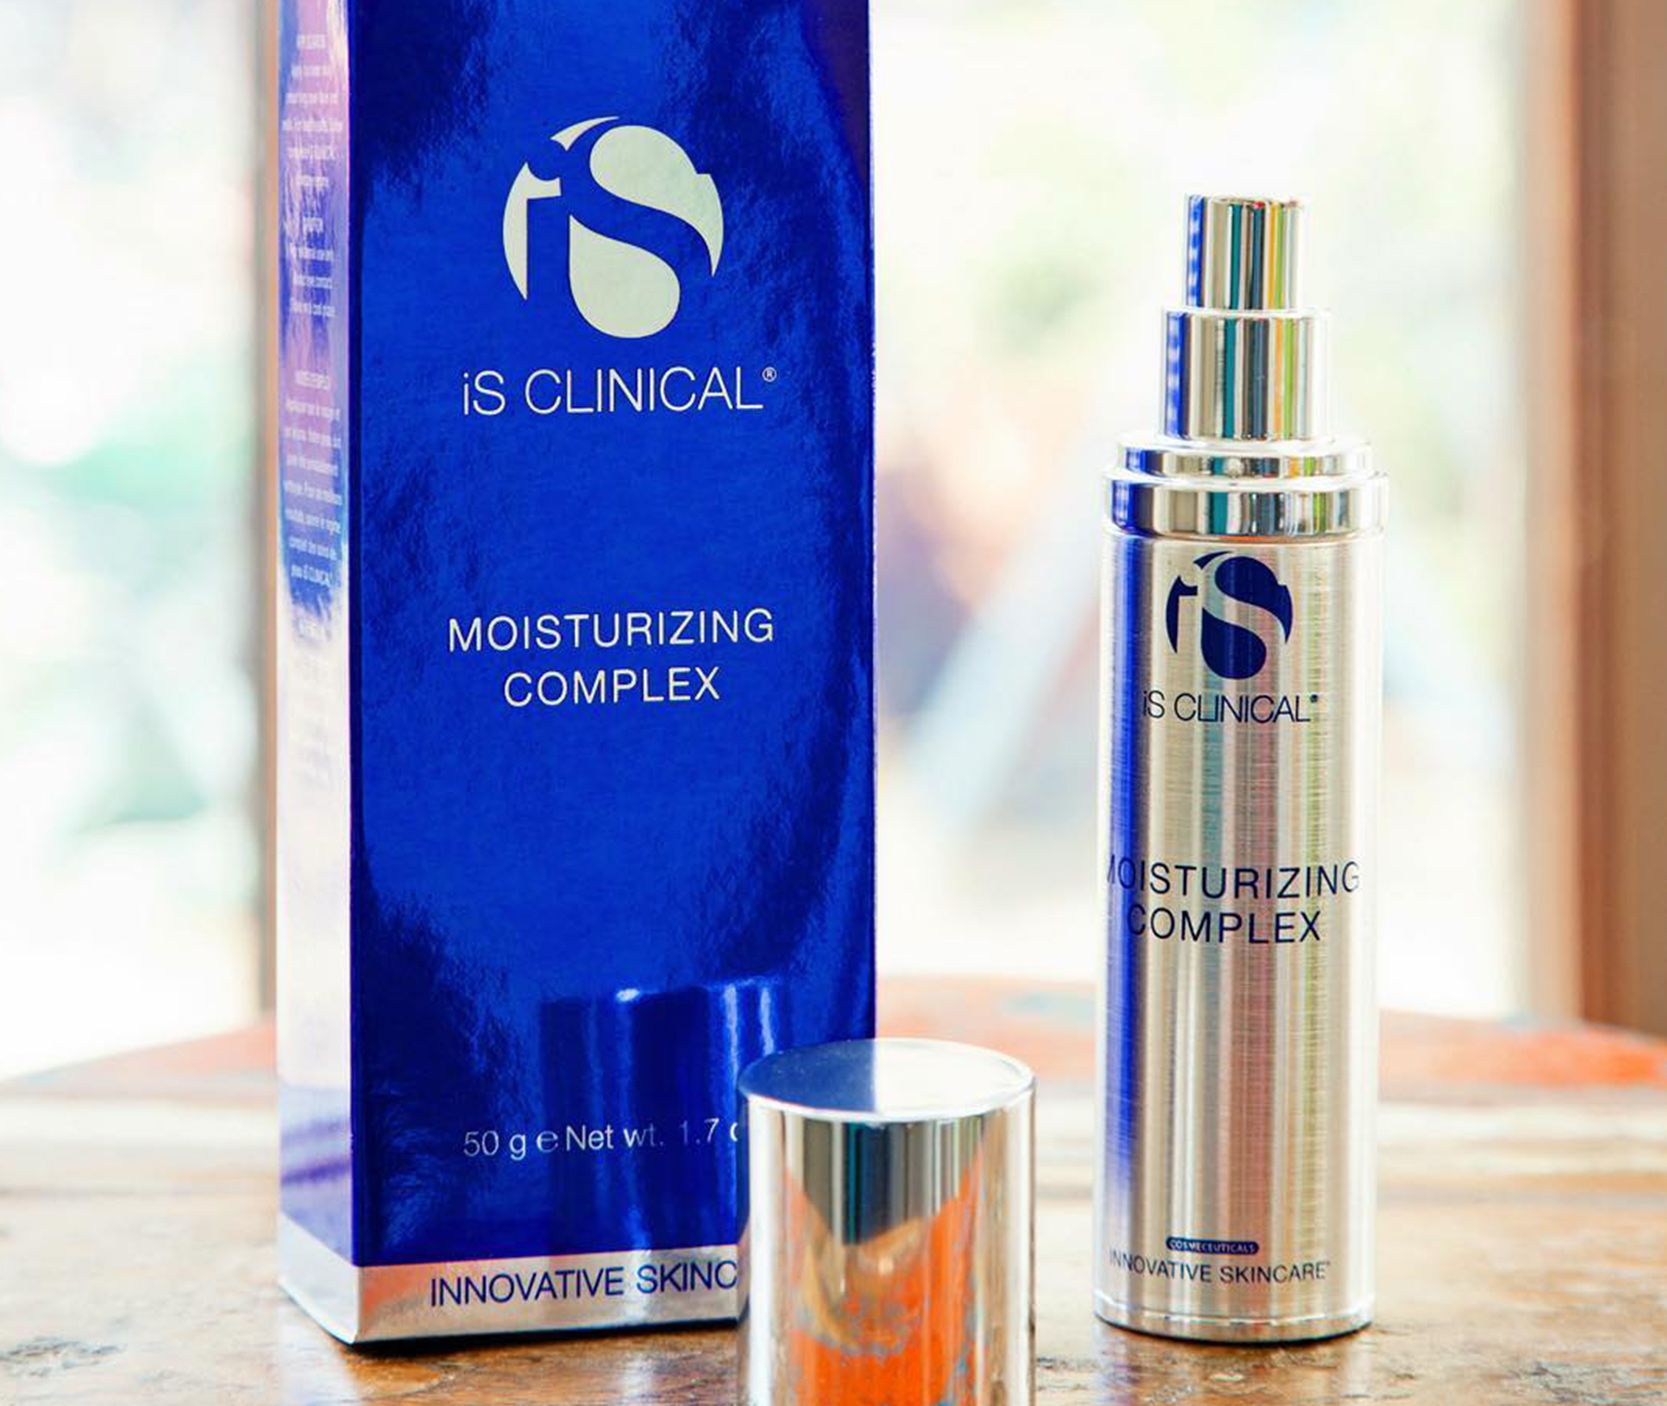 iS Clinical: Moisturizing Complex